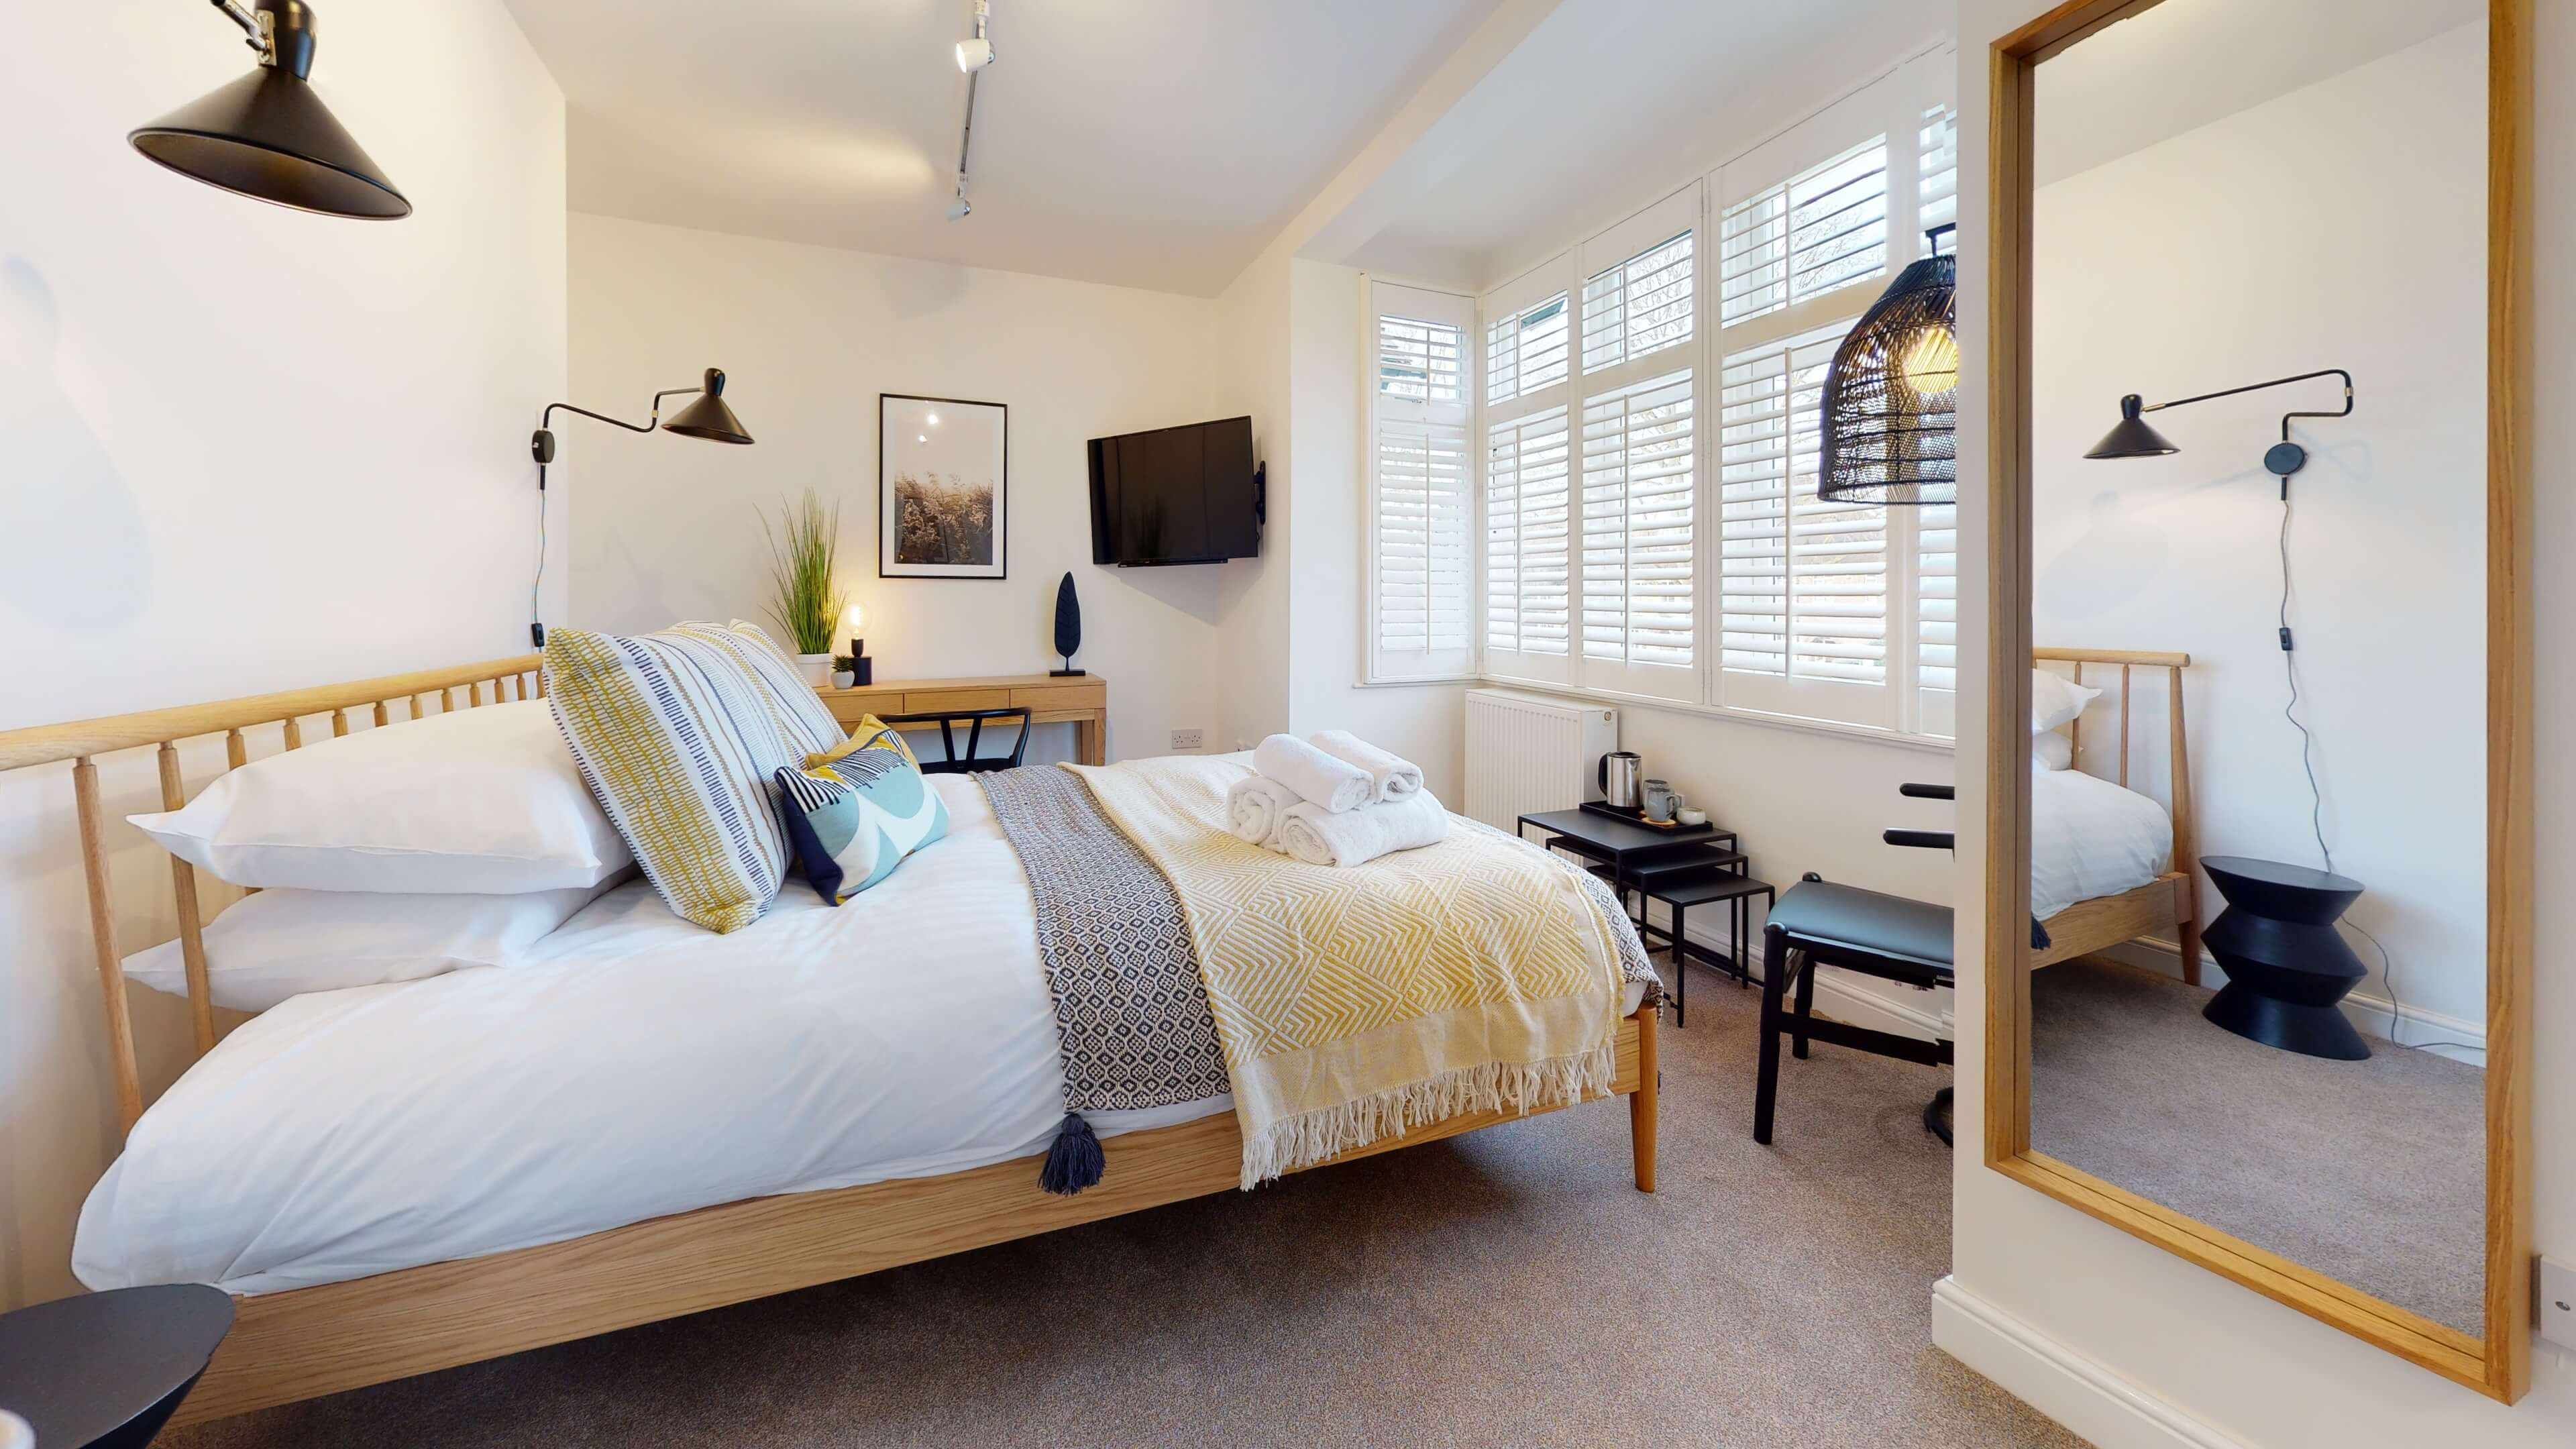 The Oxford Lodge Merton Suite 2 The Oxford Lodge Merton Suite Bedroom4